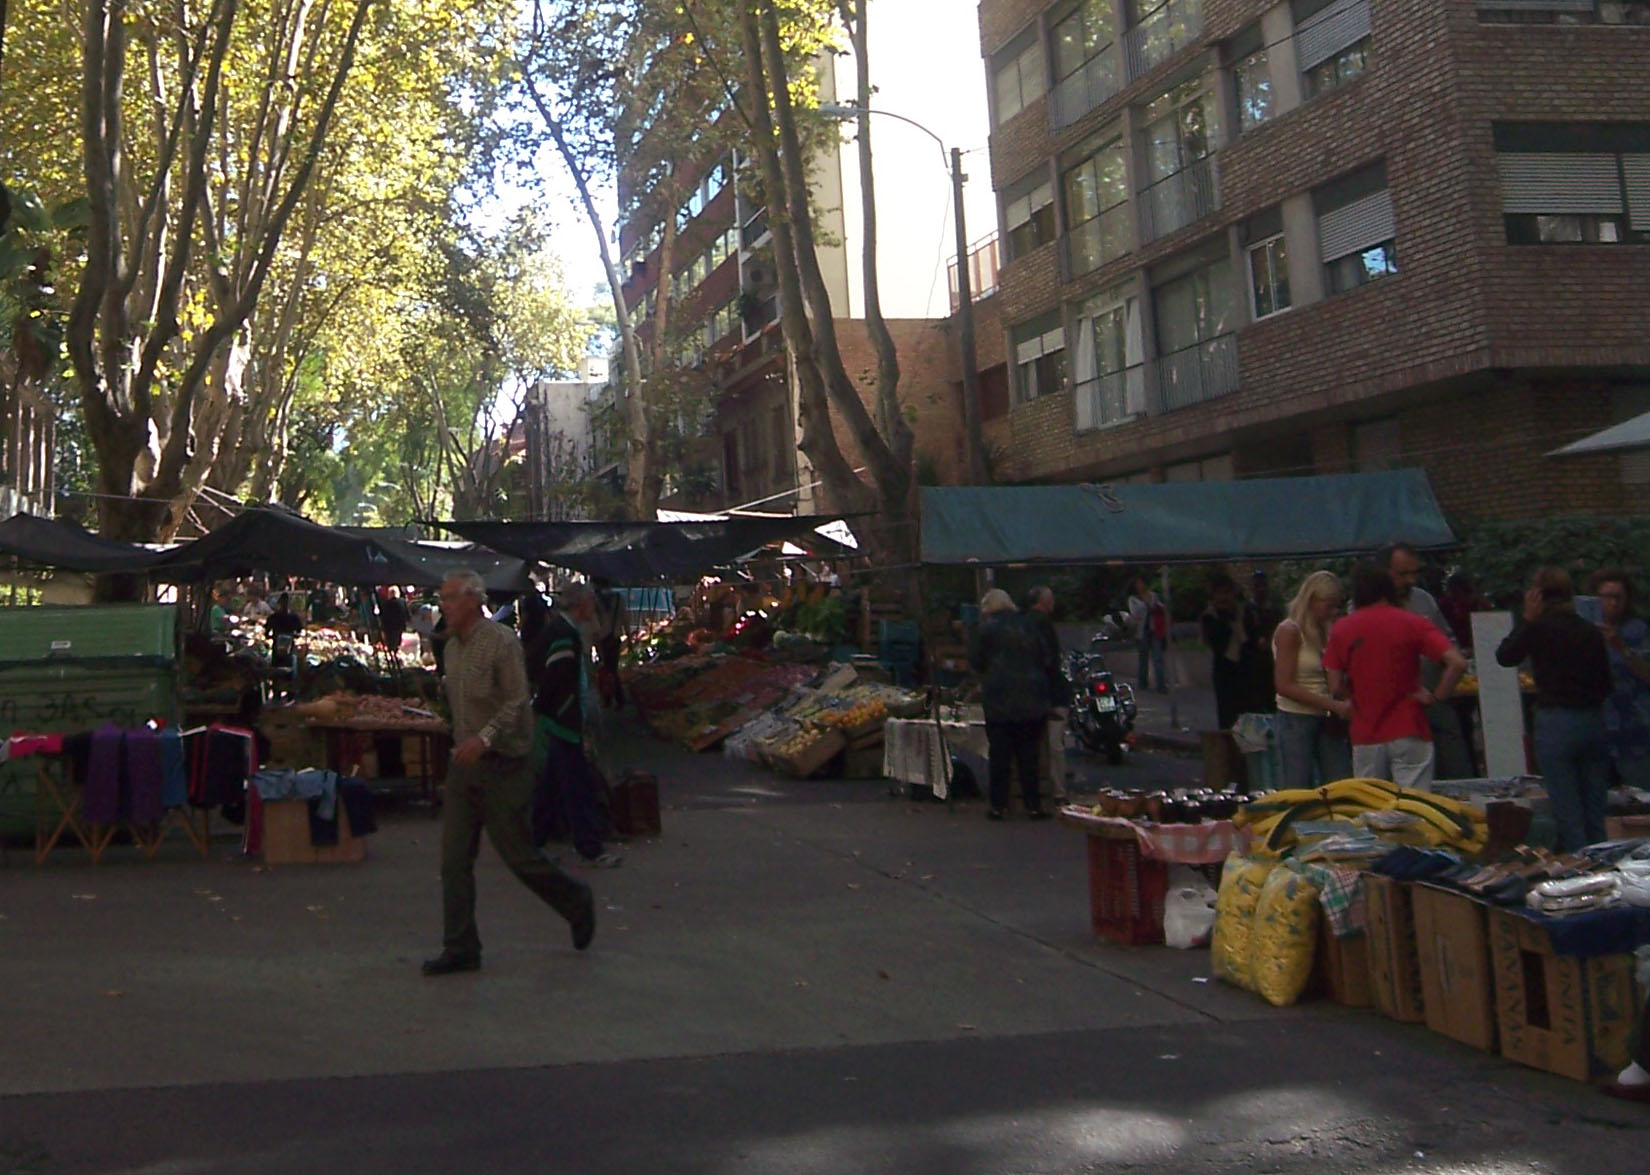 Market at Berro and Marti